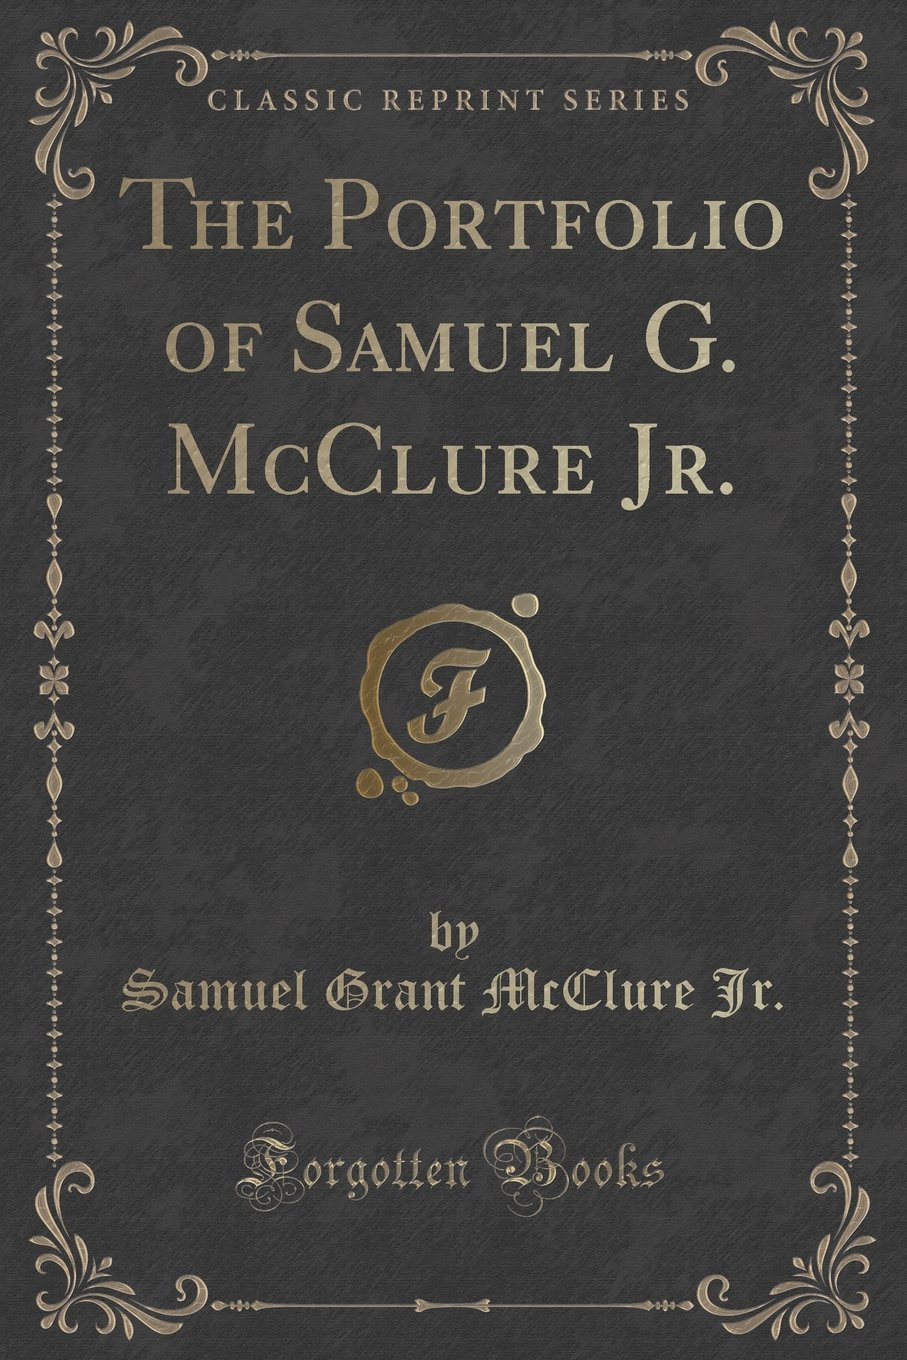 The Portfolio of Samuel G. McClure Jr. (Classic Reprint): Samuel Grant  McClure Jr.: 9781333376659: Amazon.com: Books